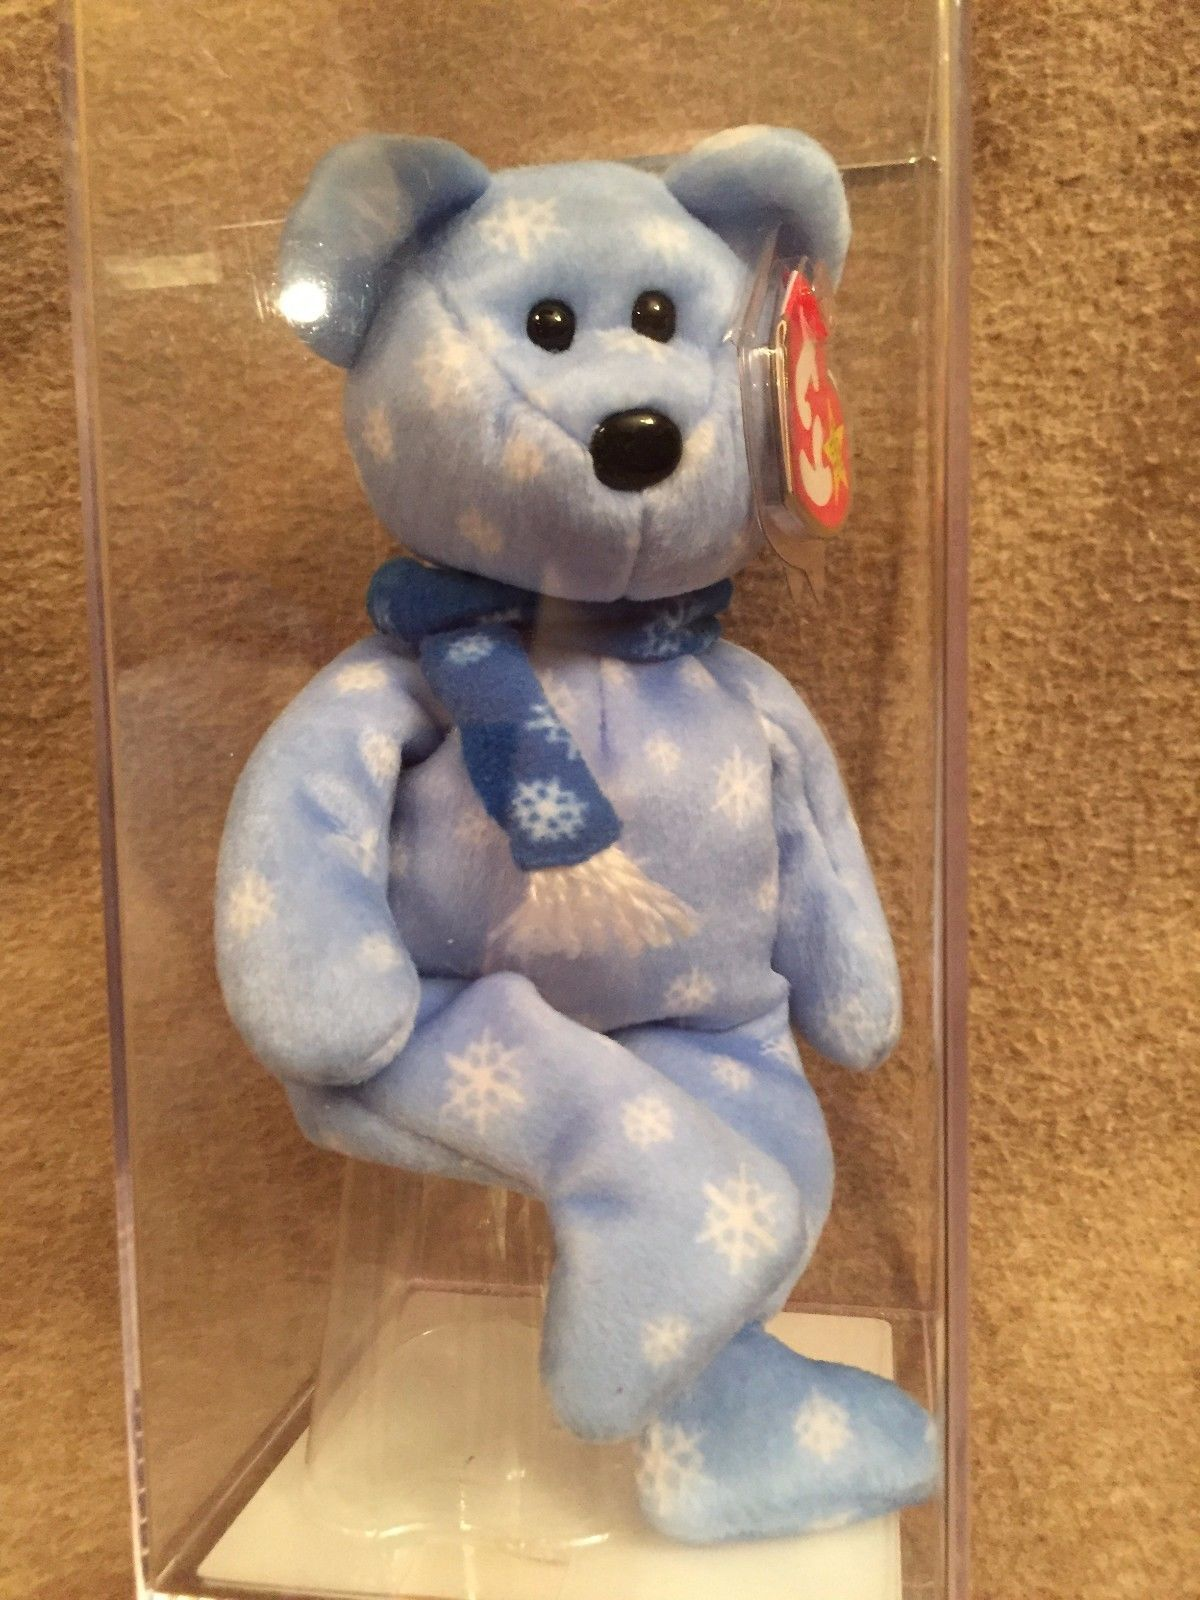 65083bcfae9 1999 Holiday Teddy Authenticated Beanie Babies Price Guide – Beanie ...